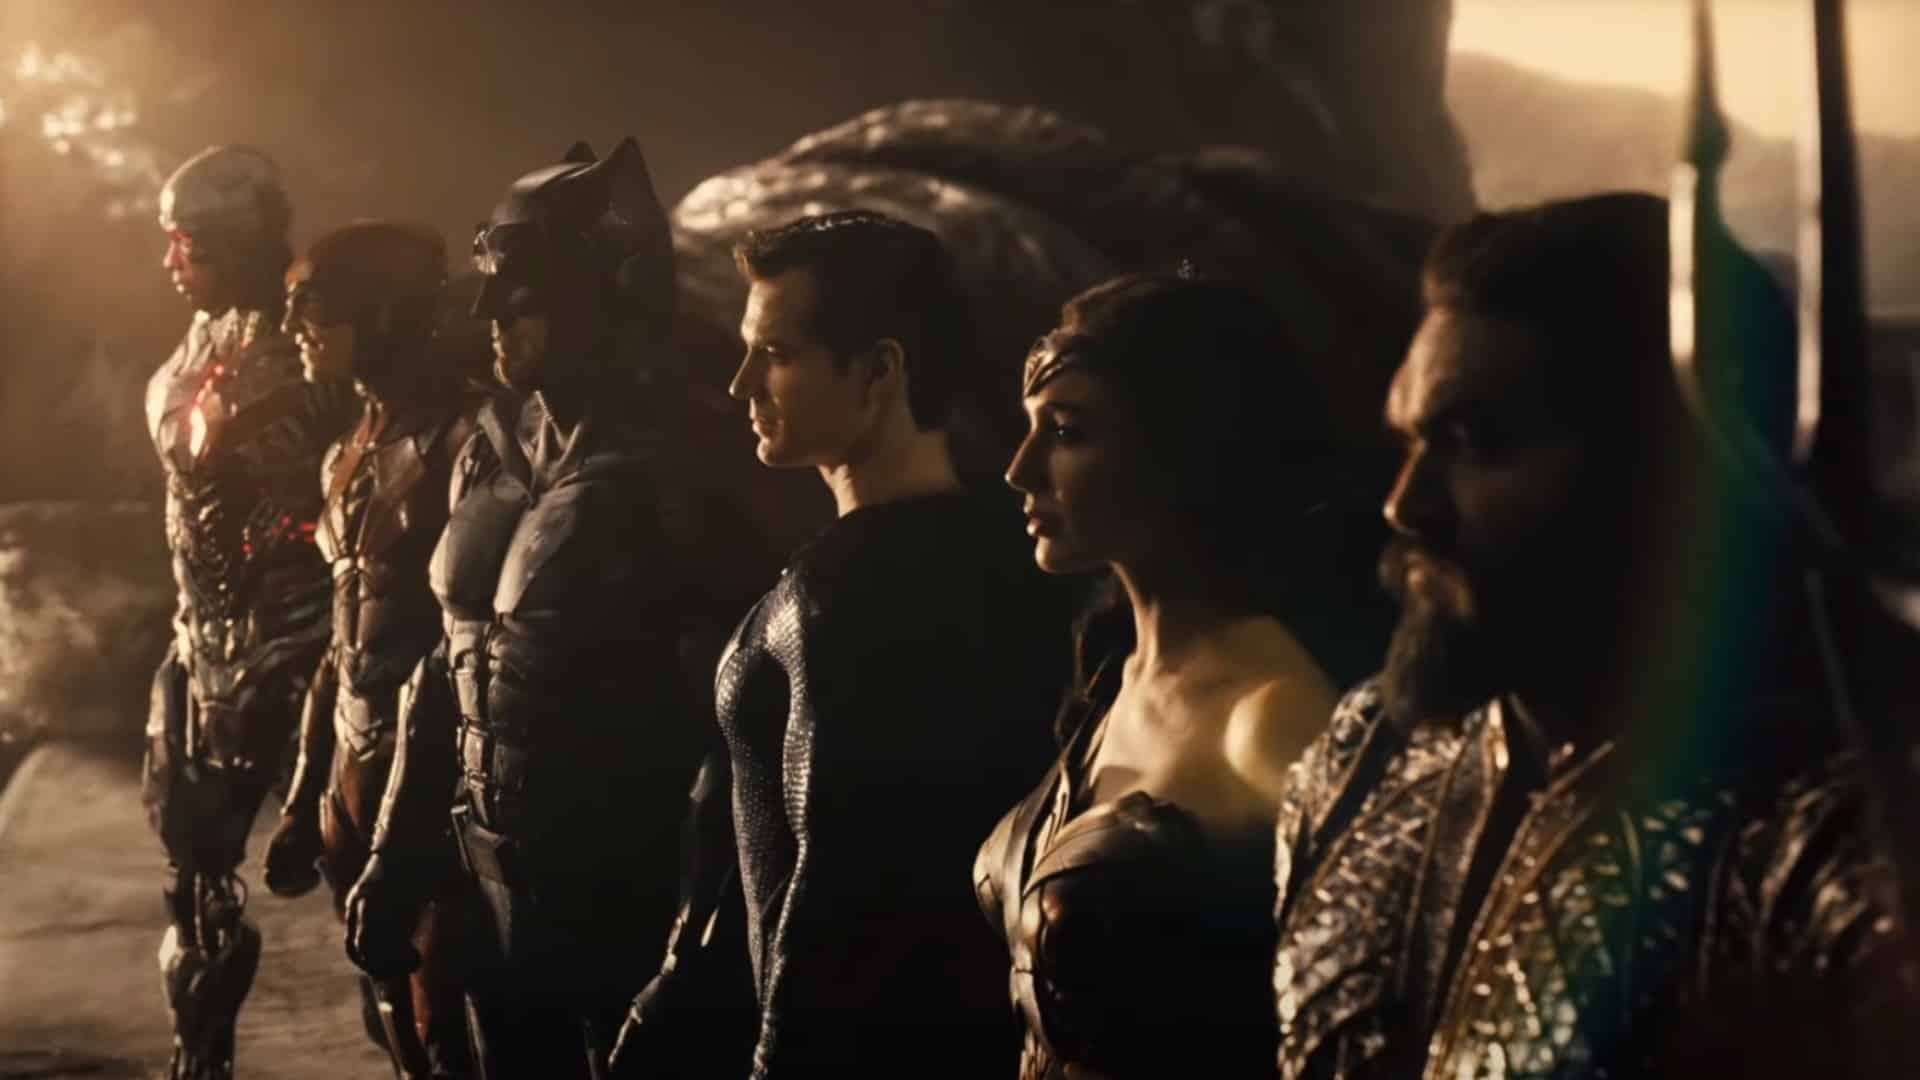 four hours and no Joss Whedon later, hbo max zack snyder justice league cut was good and we were all wrong Zack Snyder's Justice League